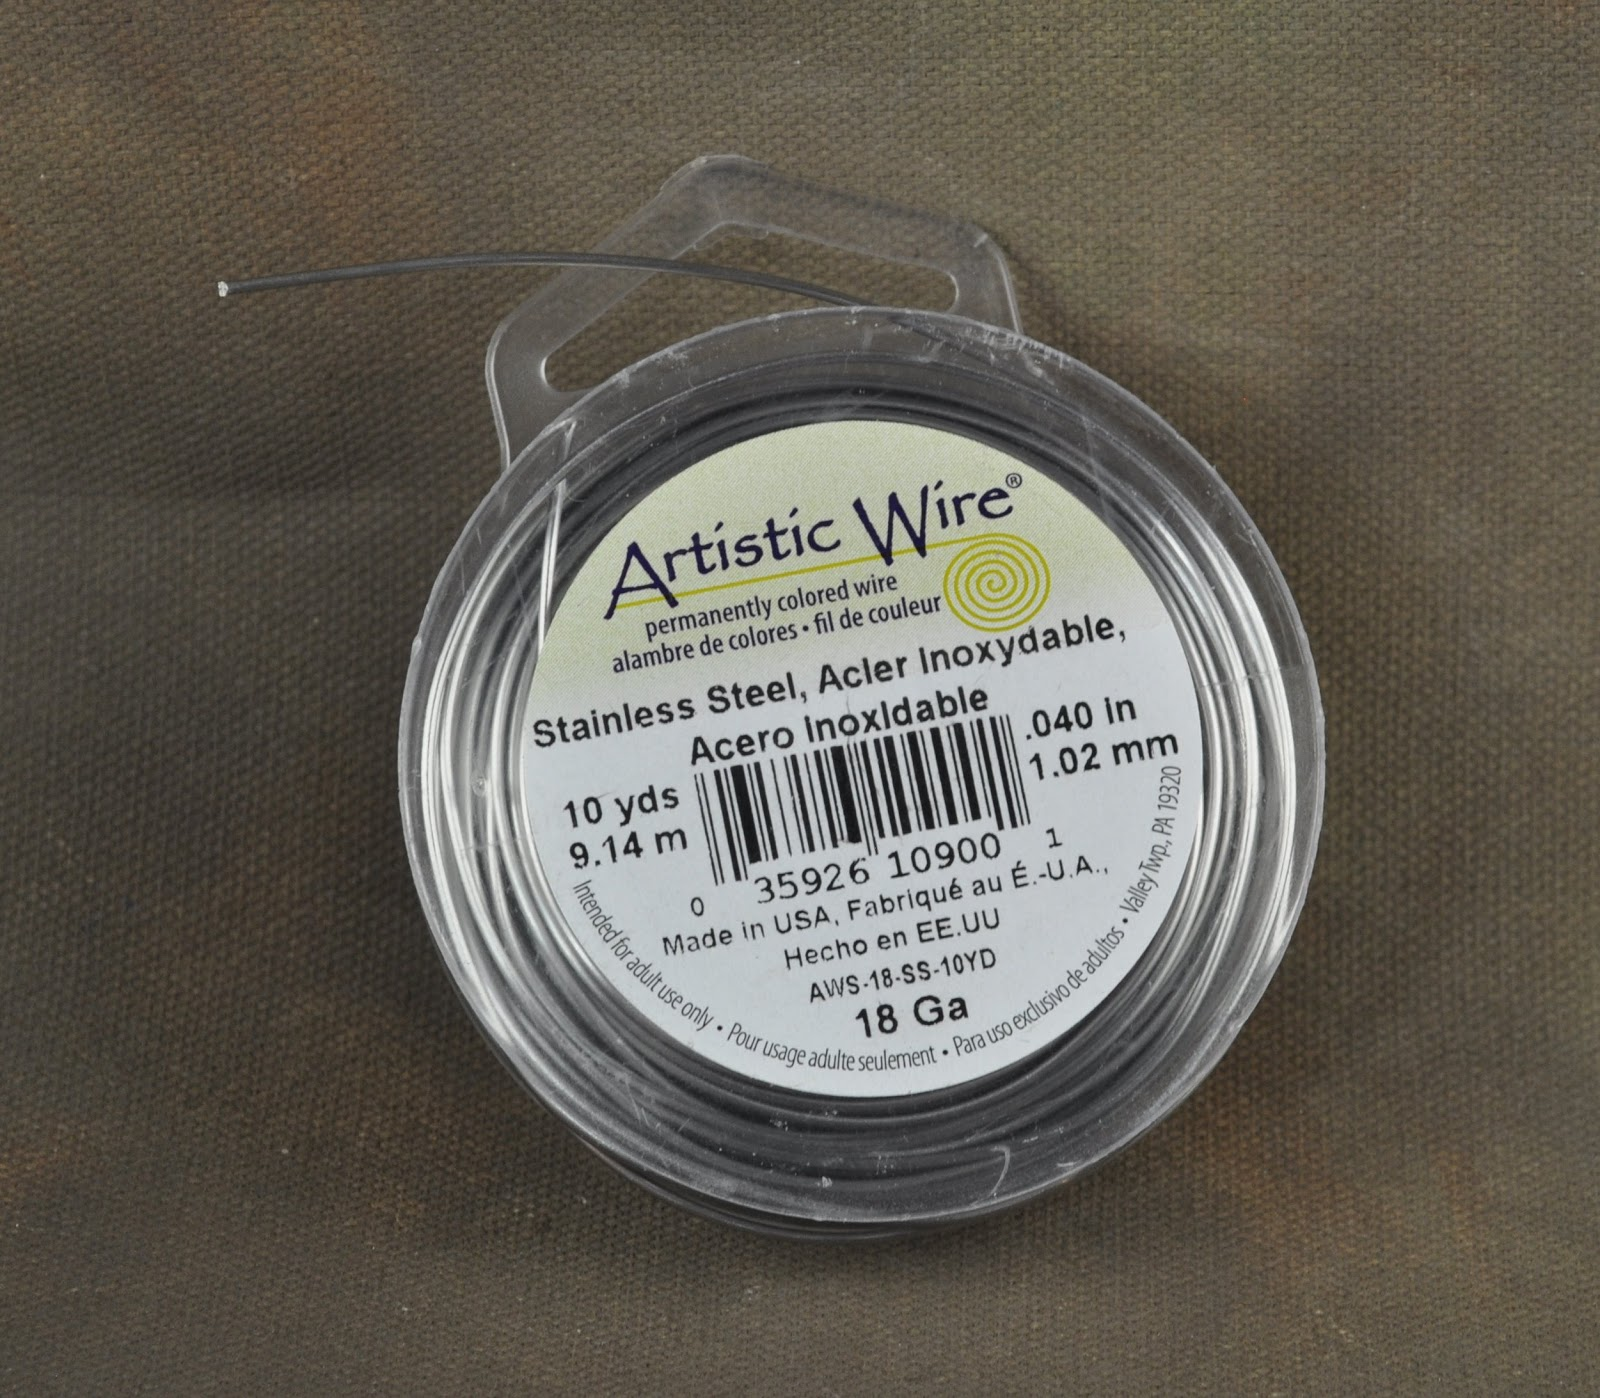 The Beadful Life @ BeadFX: Stainless Steel Artistic Wire for Lampworking